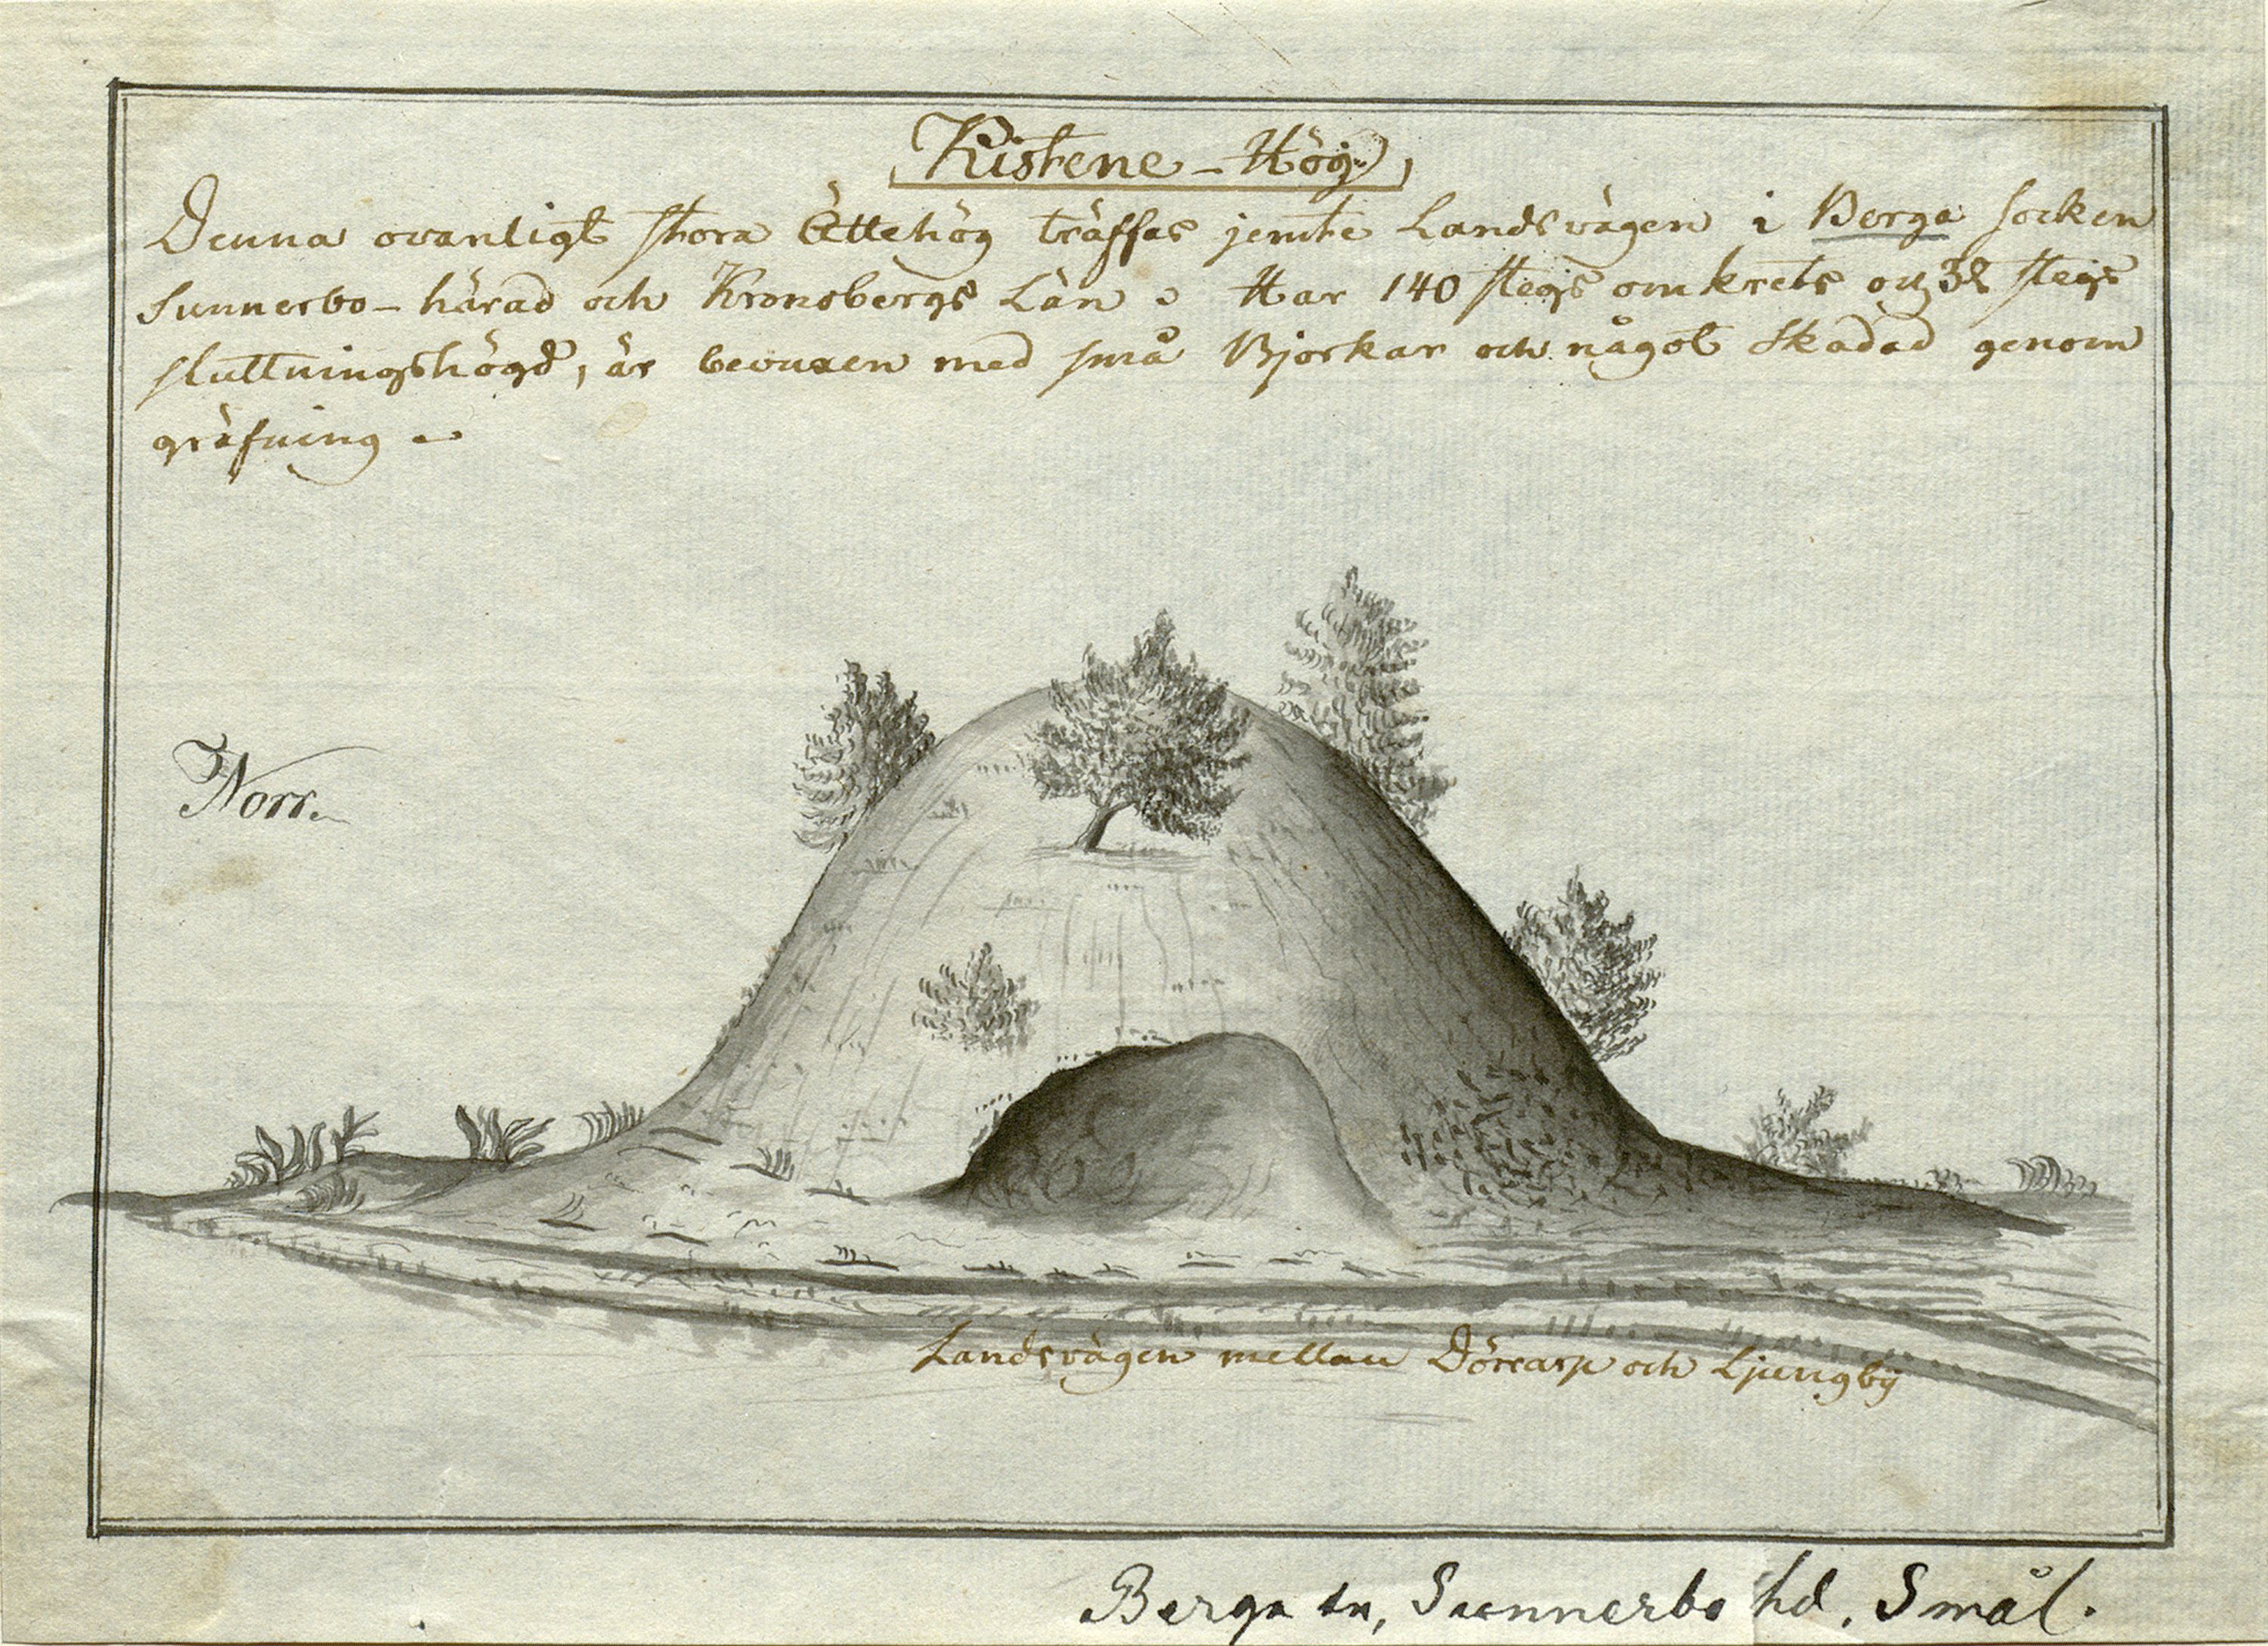 Tumulus in Kittekulle, Berga parish, Småland, Sweden